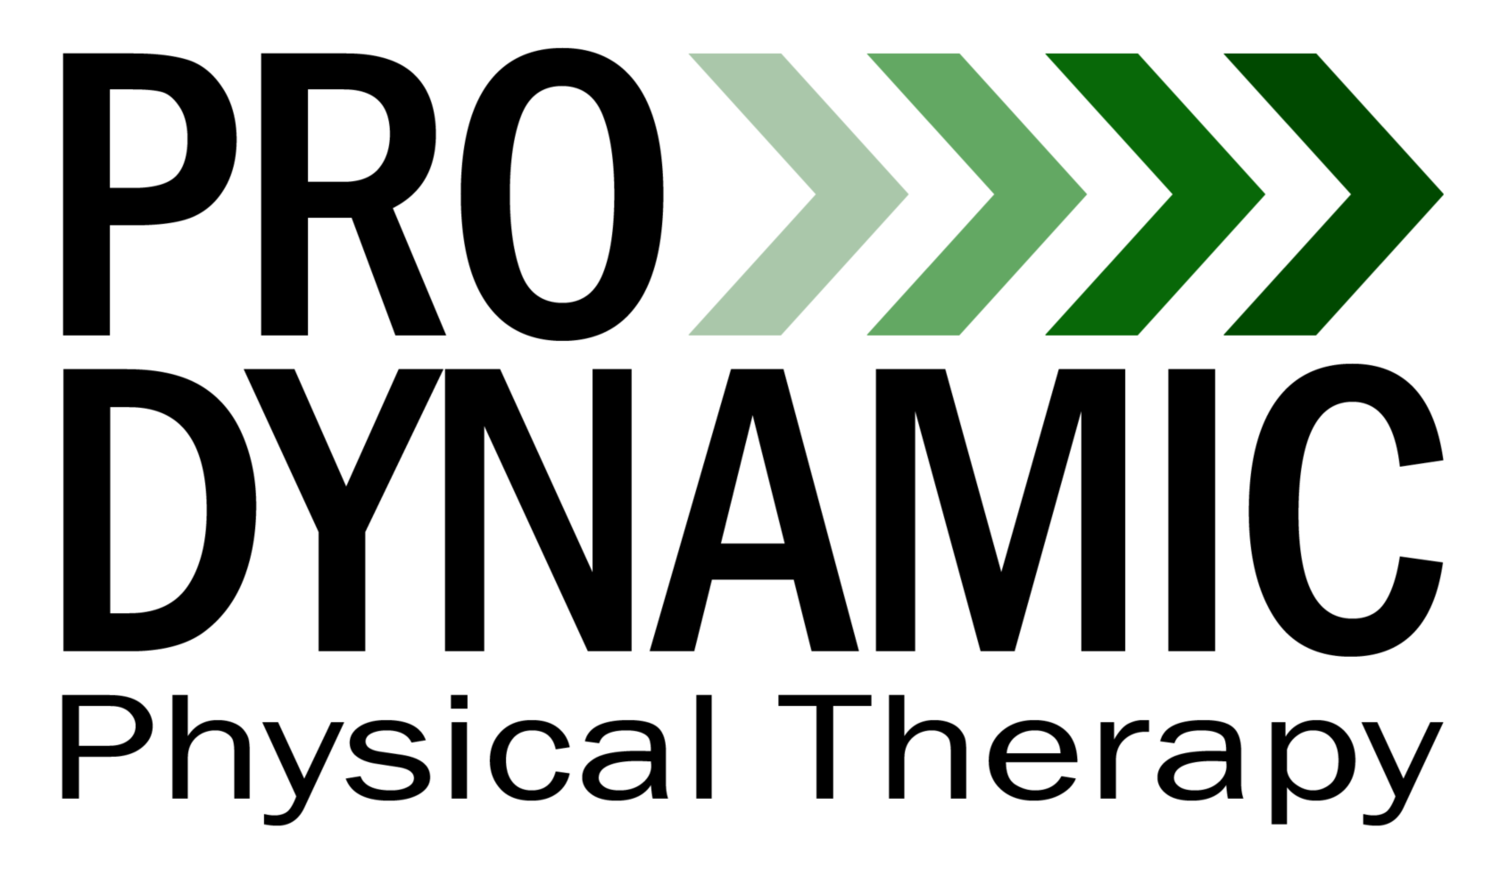 Blog — Pro Dynamic Physical Therapy Inc